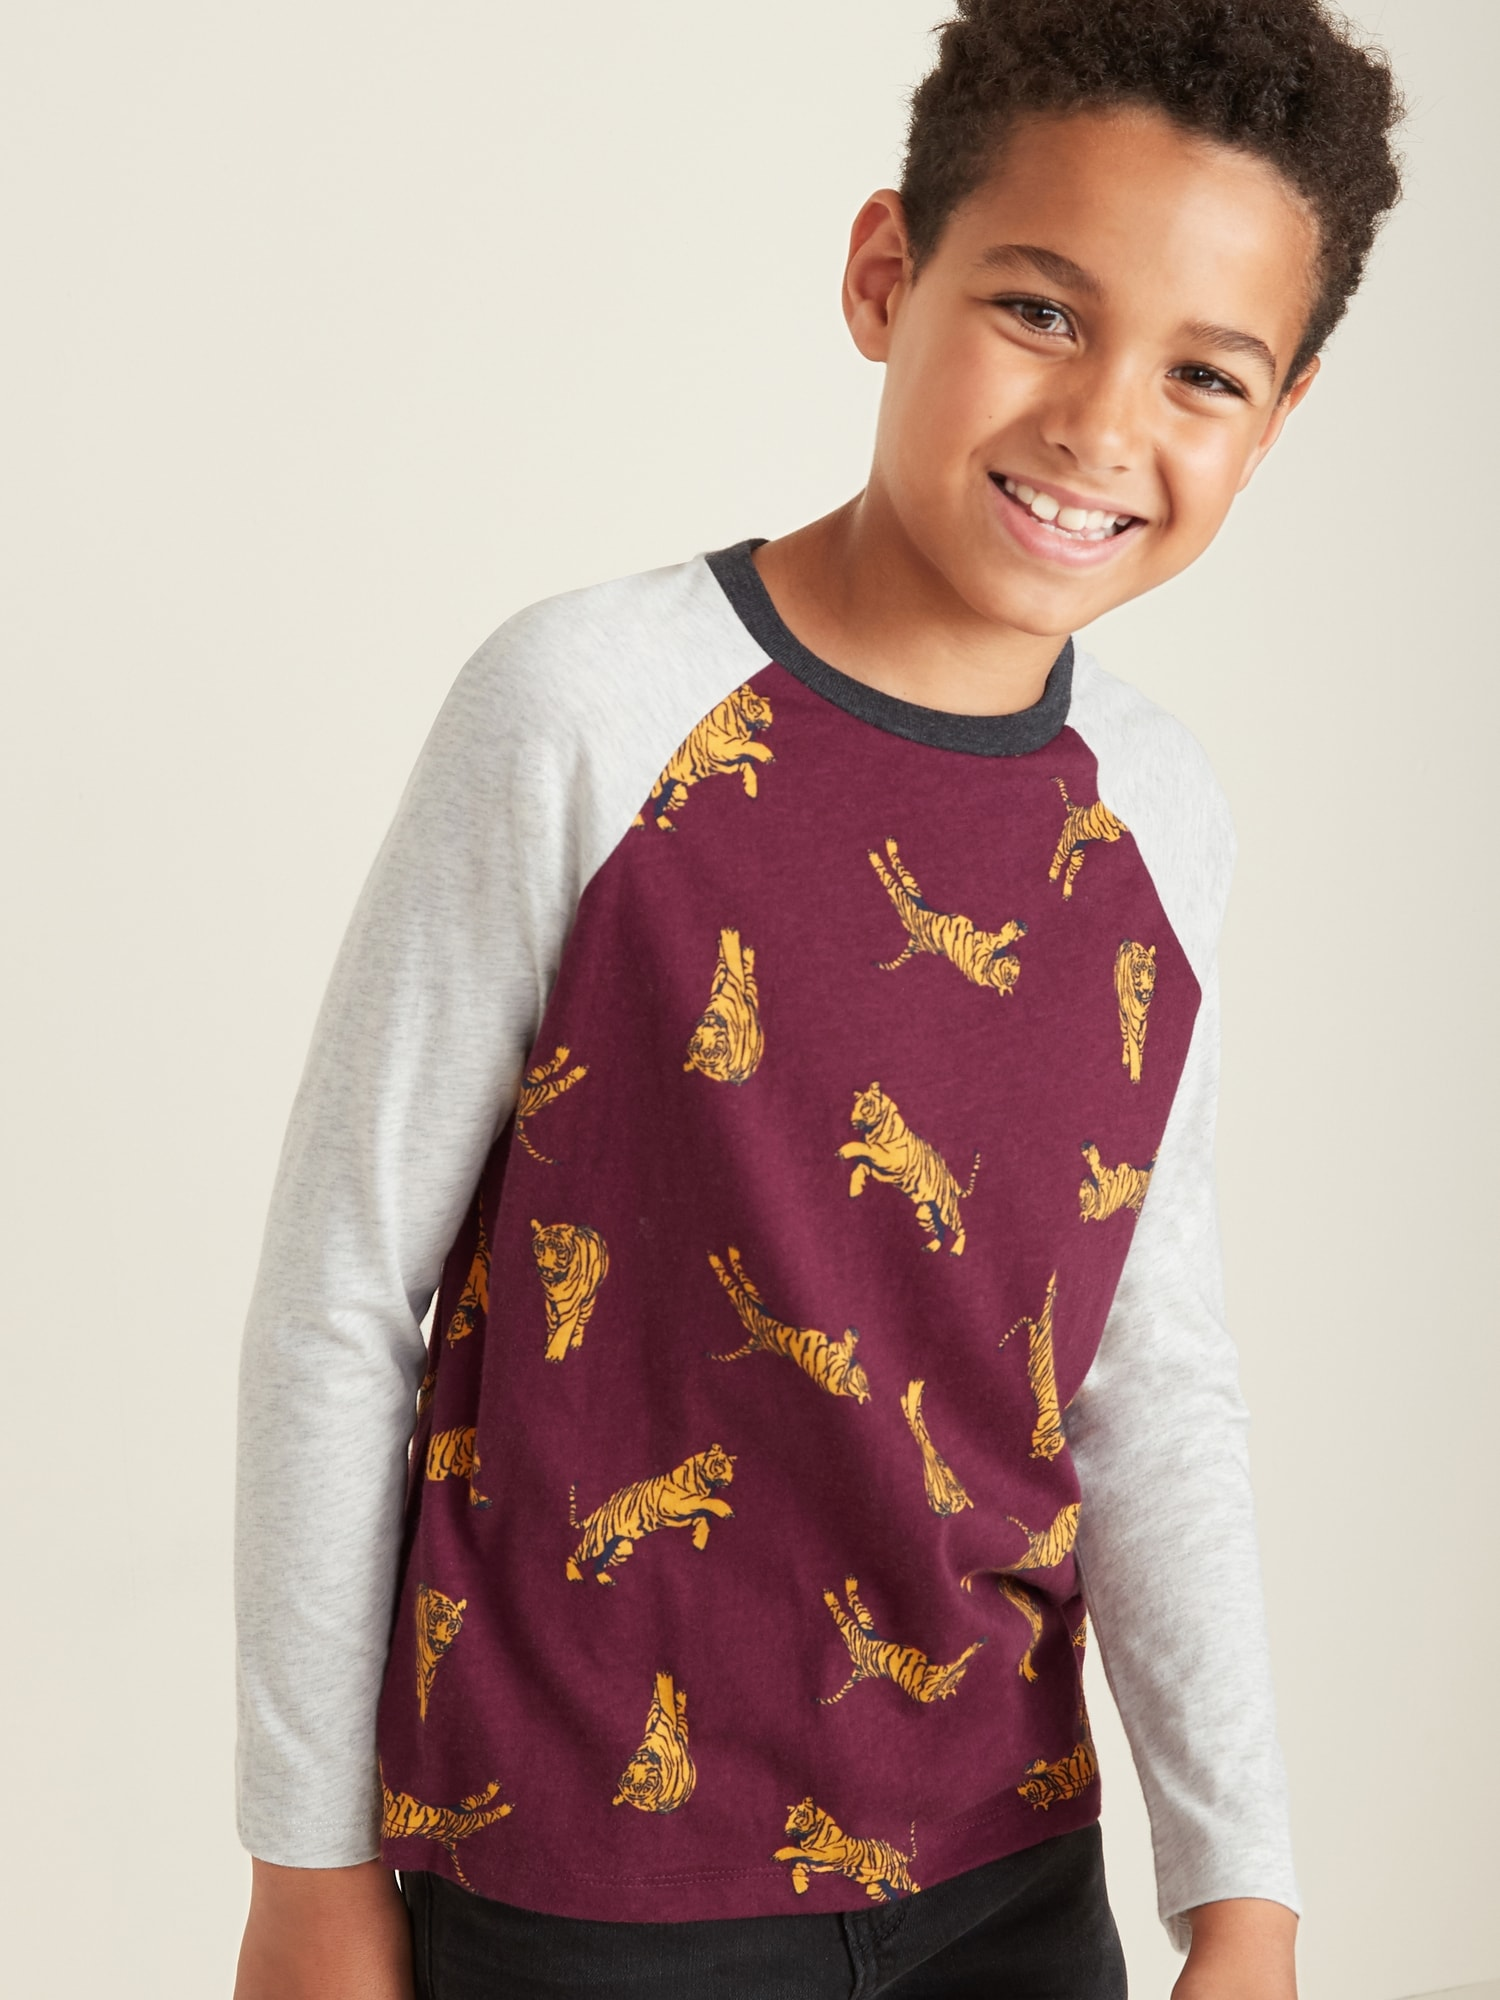 Printed Softest Raglan Sleeve Tee For Boys by Old Navy